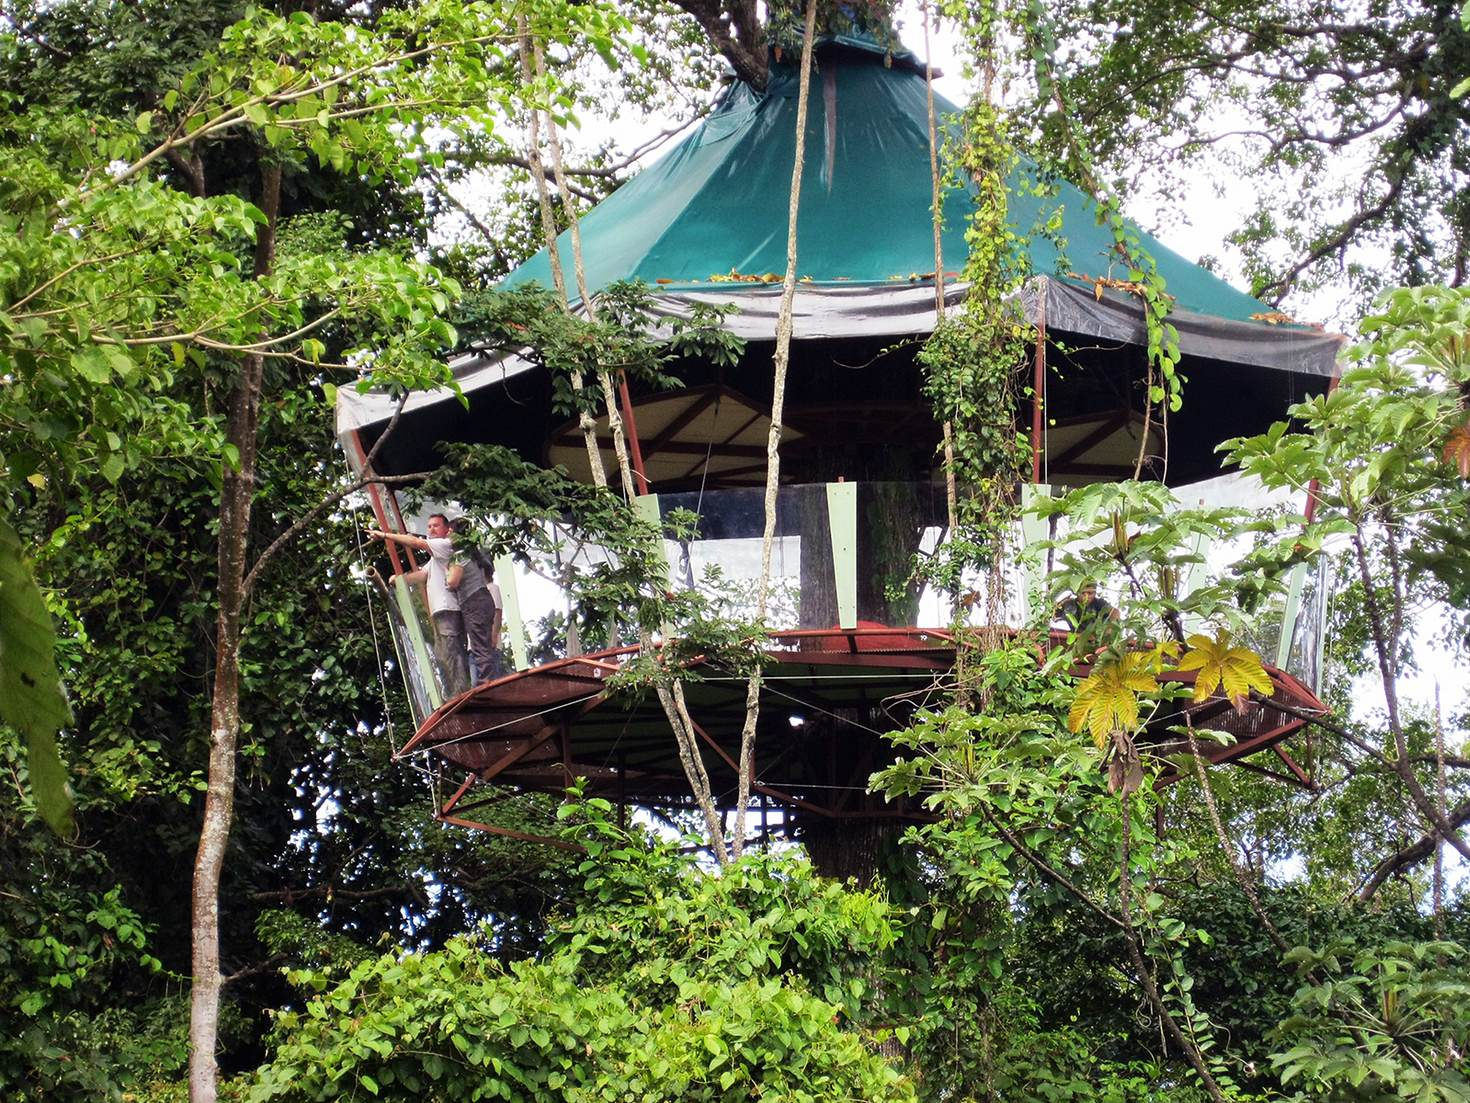 The tree house at Nature Observatorio requires guests to ascend via rope and harness © Nature Observatorio